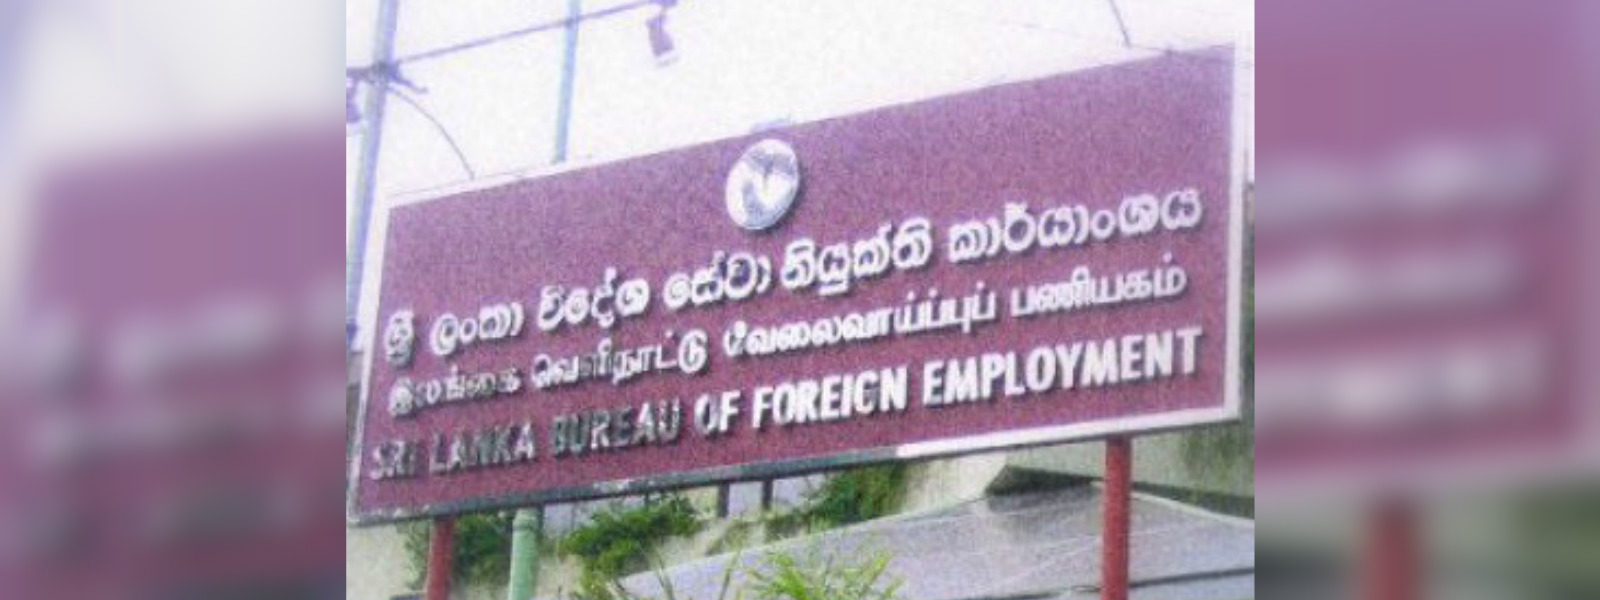 Training Courses of the Foreign Employment Bureau temporarily suspended